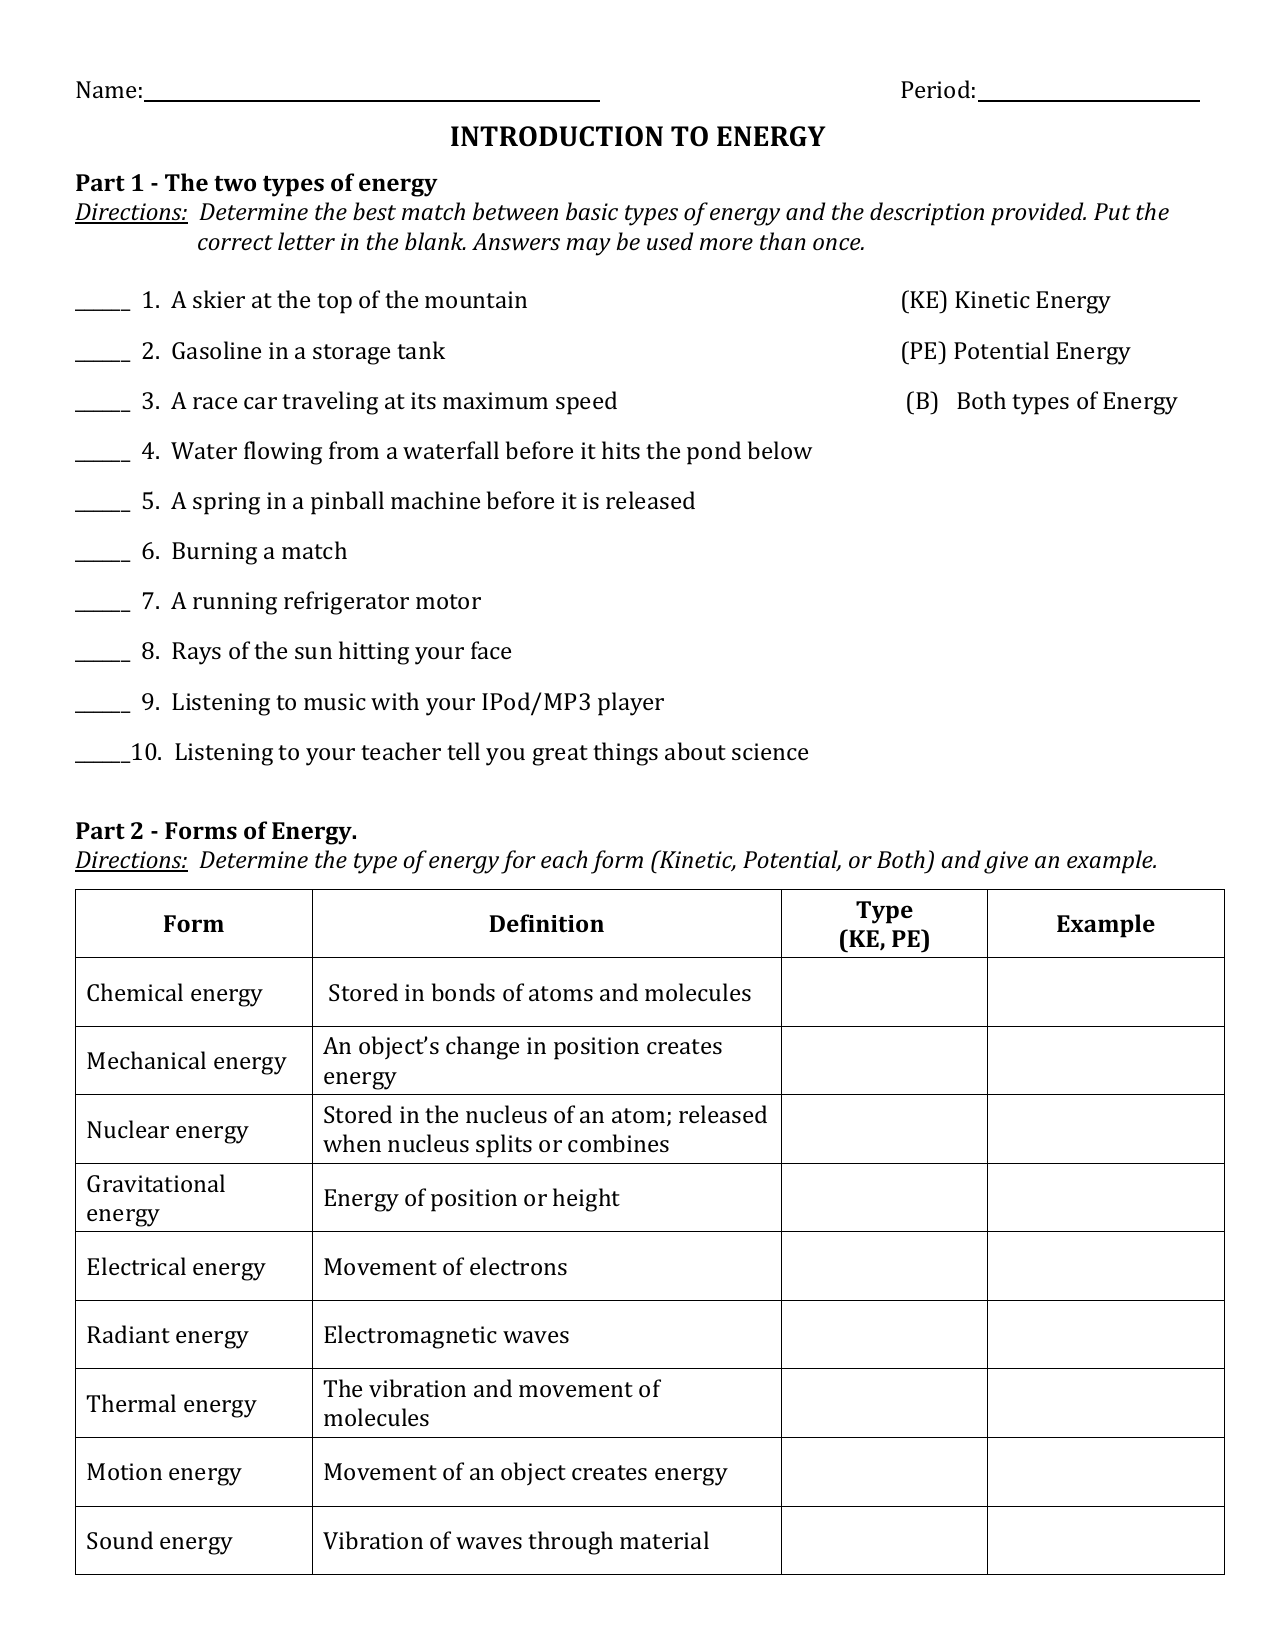 """INTRODUCTION TO ENERGY"""" WORKSHEET"""